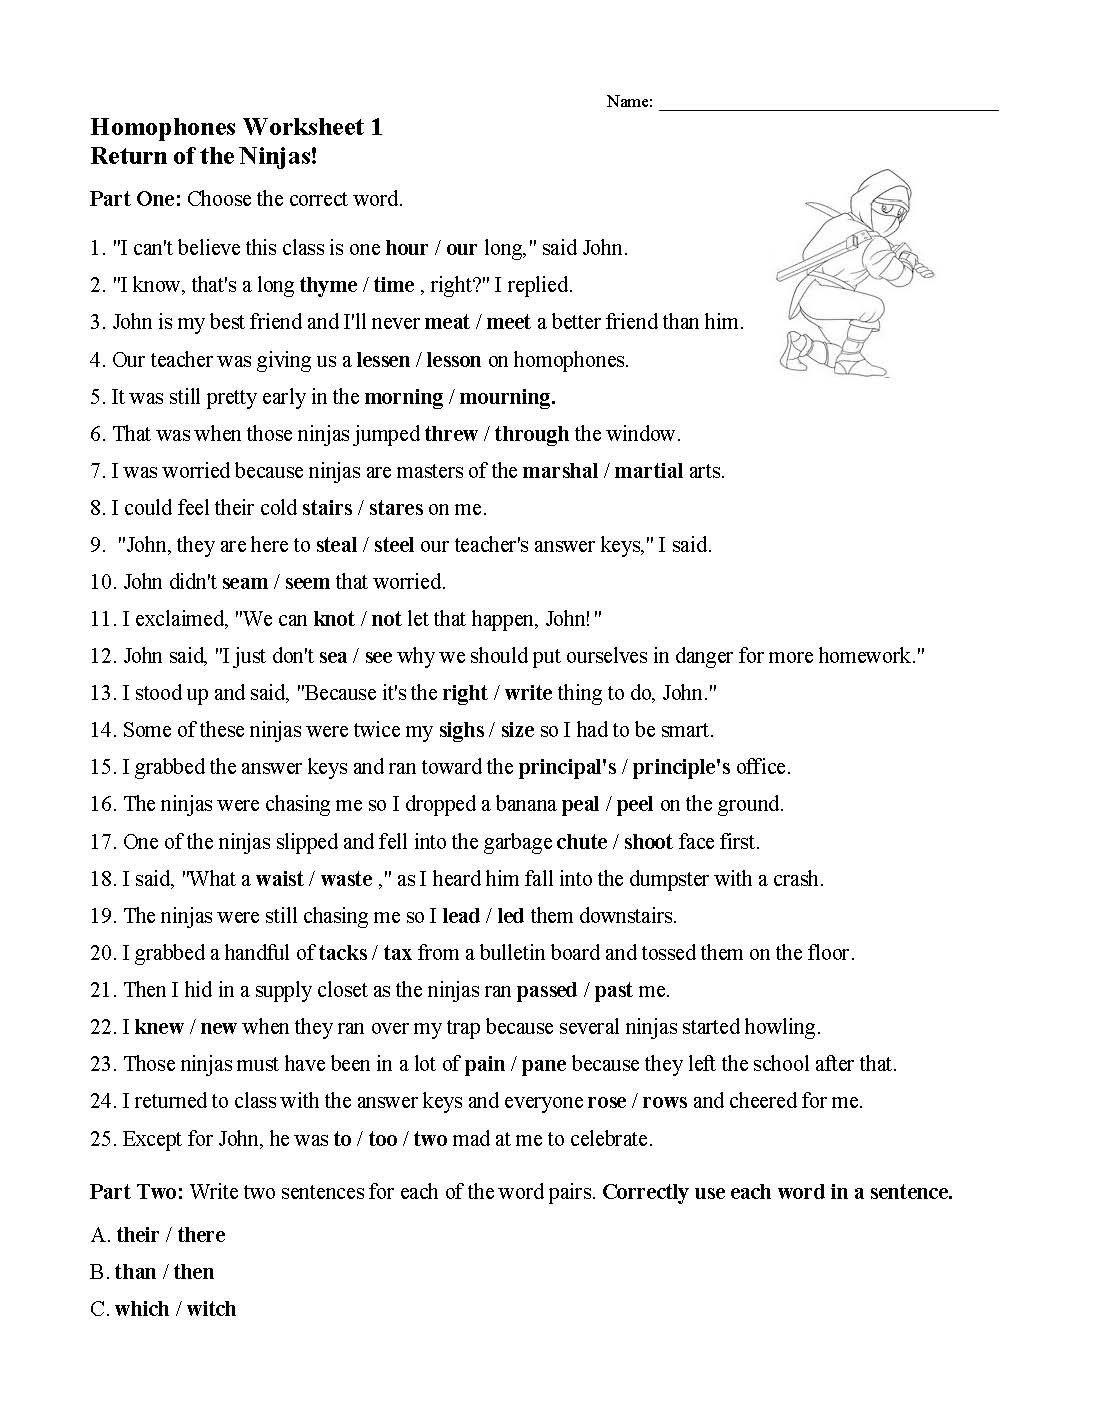 homophones worksheet 01 01